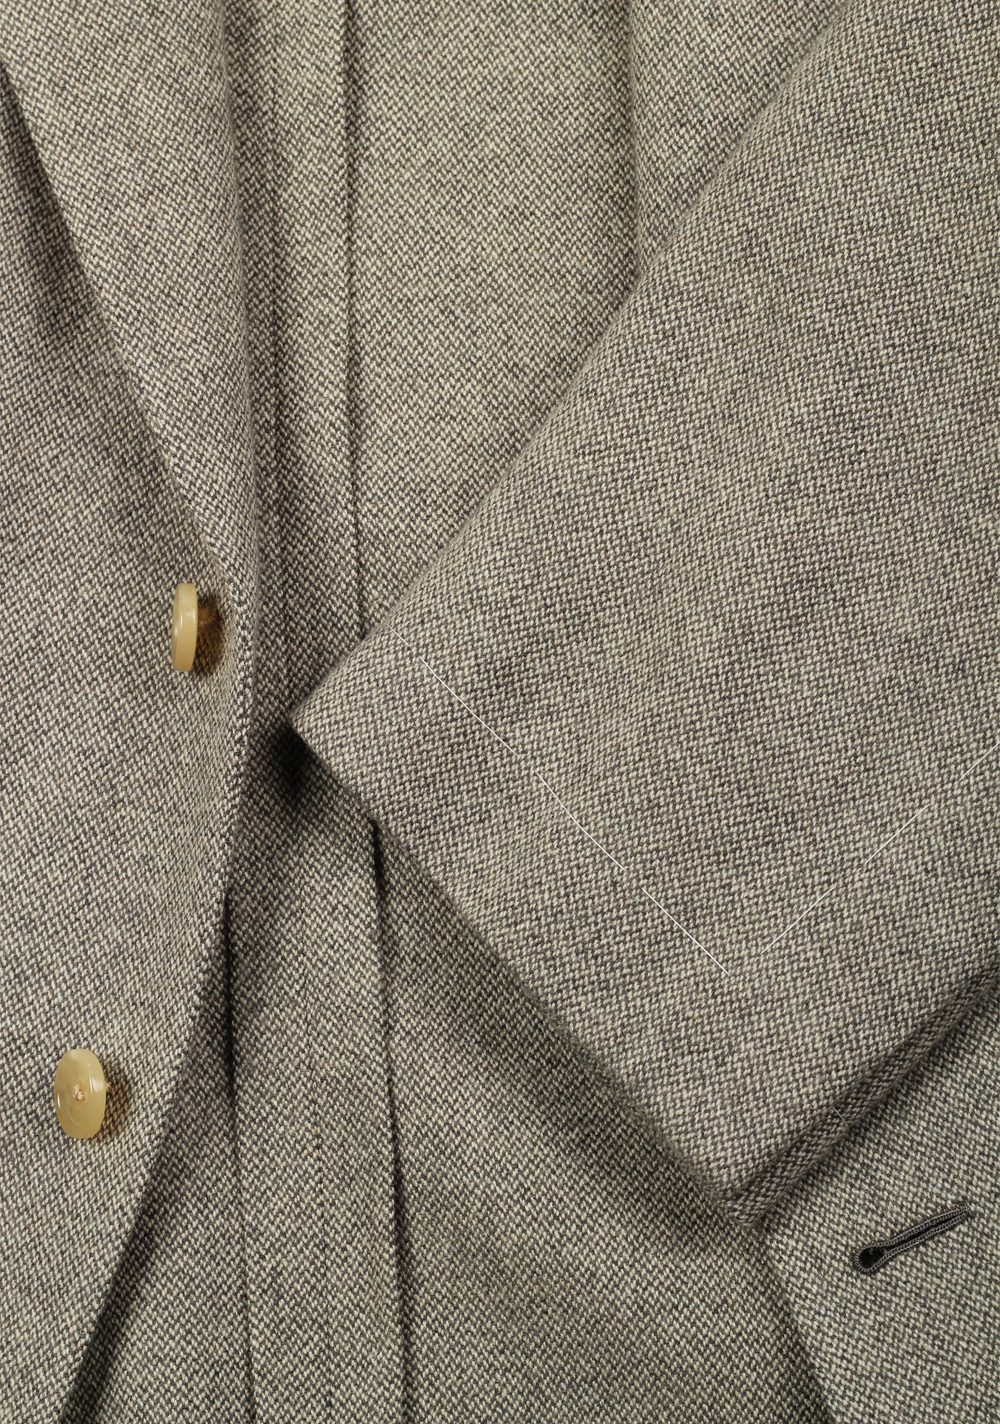 Ralph Lauren Purple Label Gray Sport Coat | Costume Limité